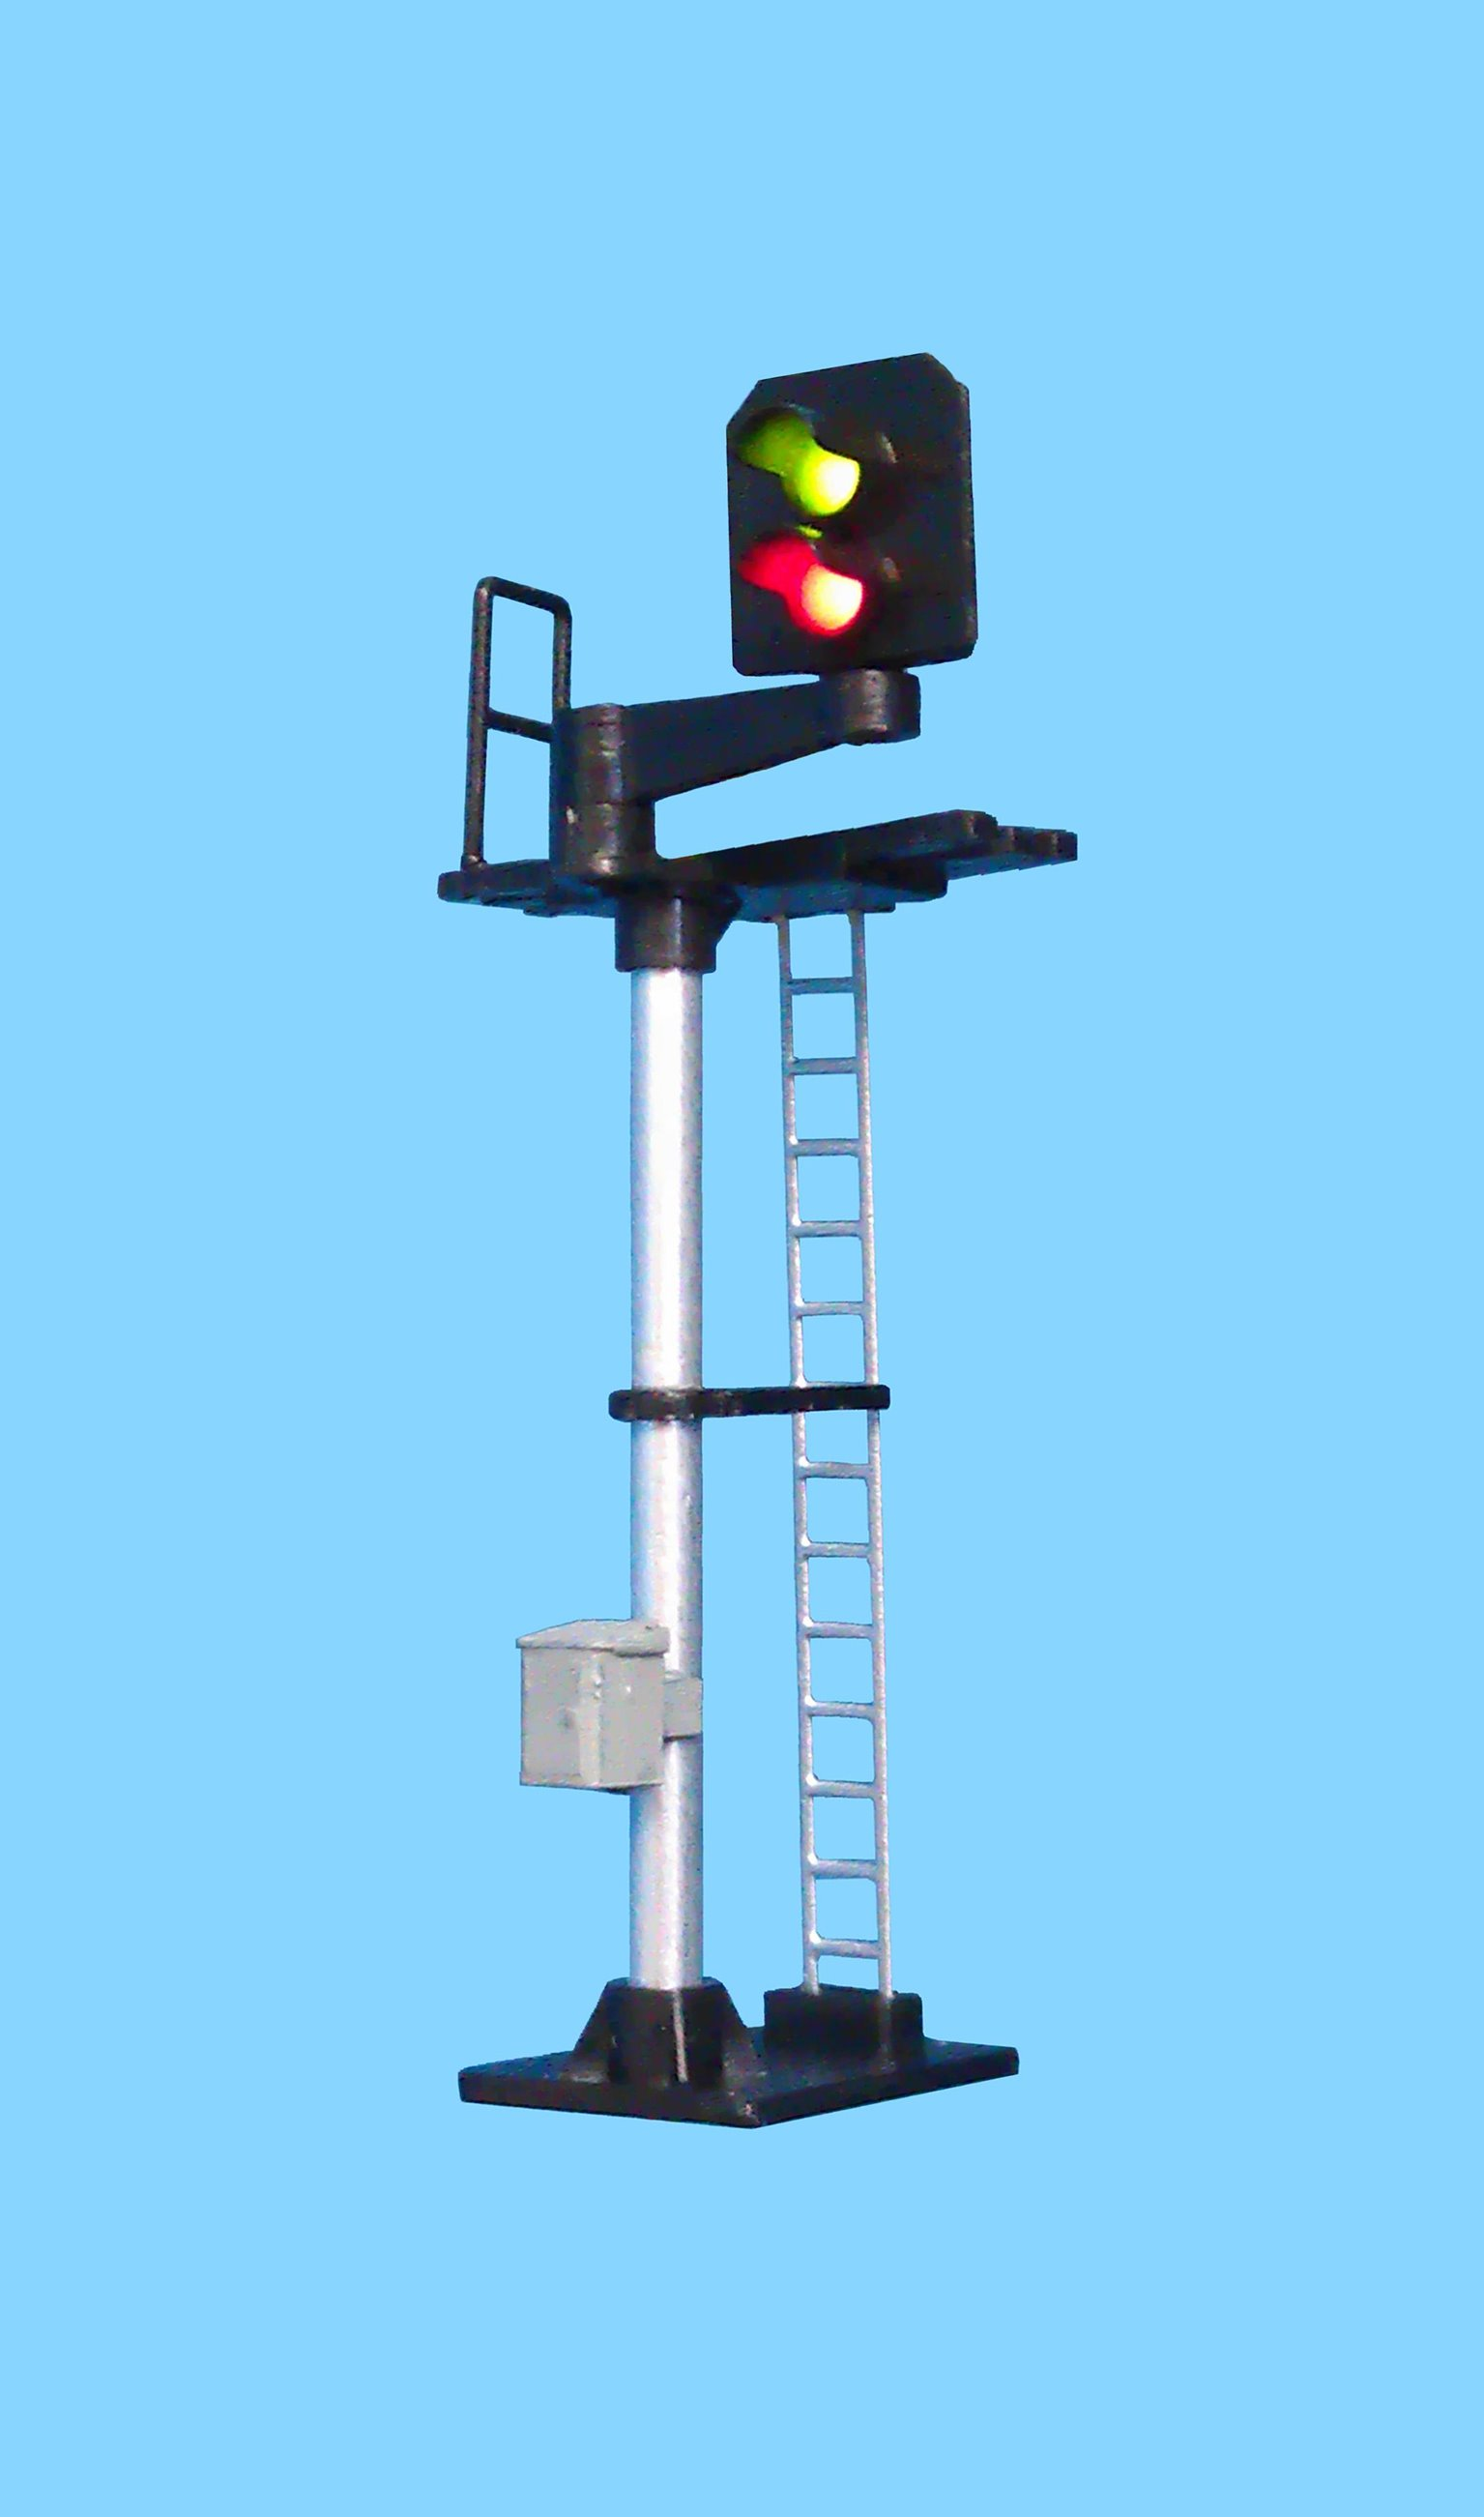 2 Light Signal Red/Green Standard Right Offset Square Head